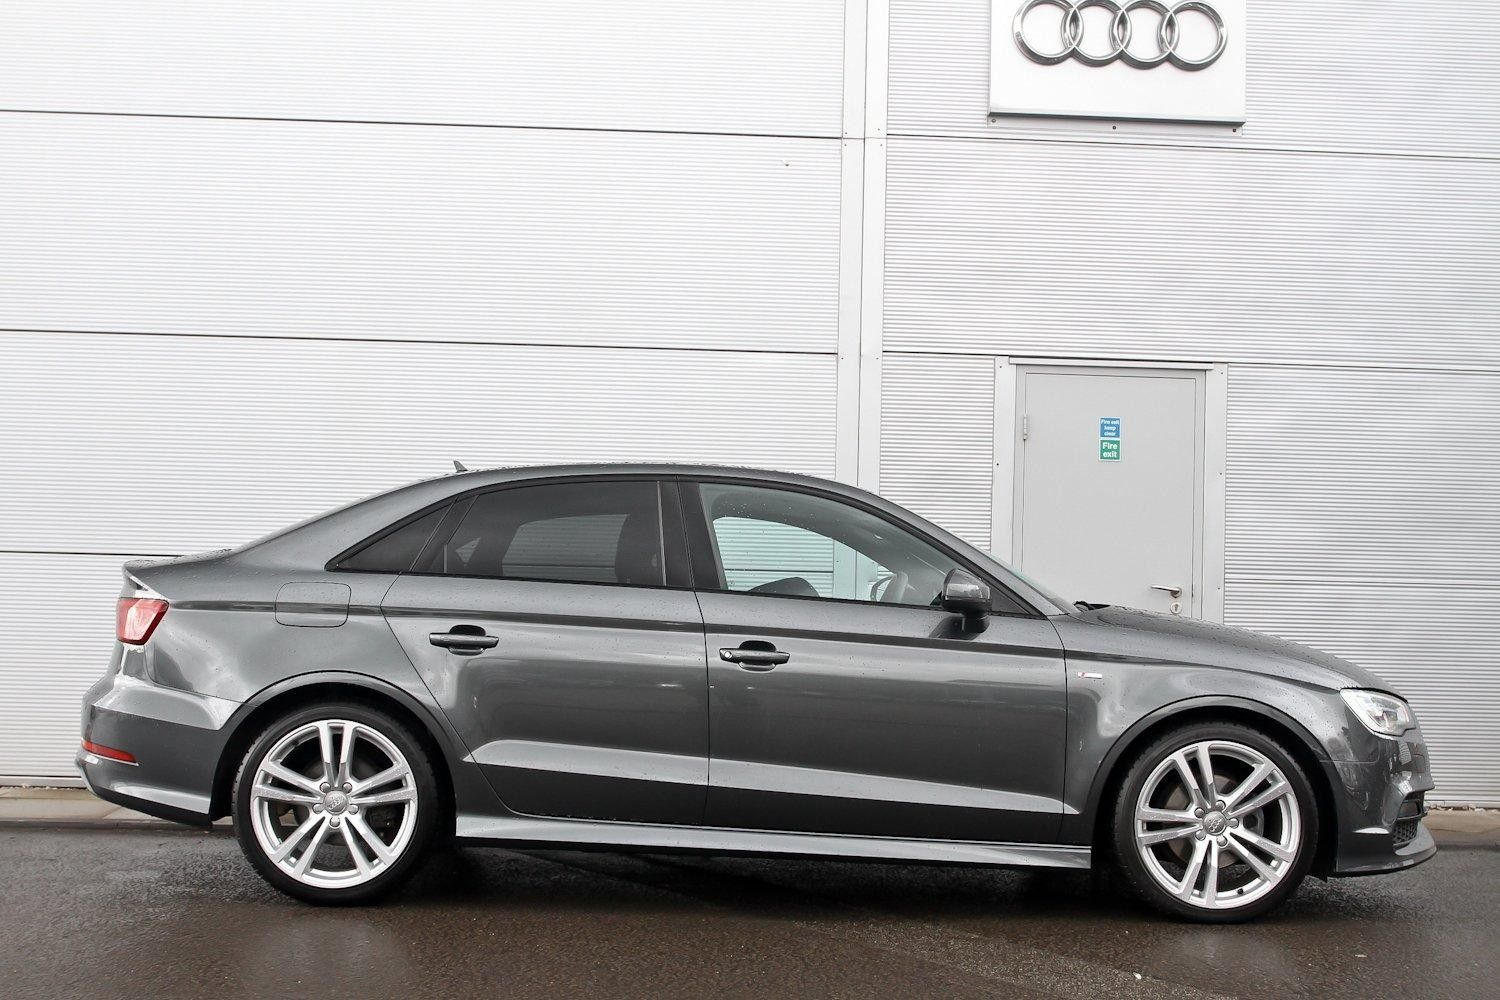 and audi sale ambition priced in used charcoal id type main gauteng for cars between